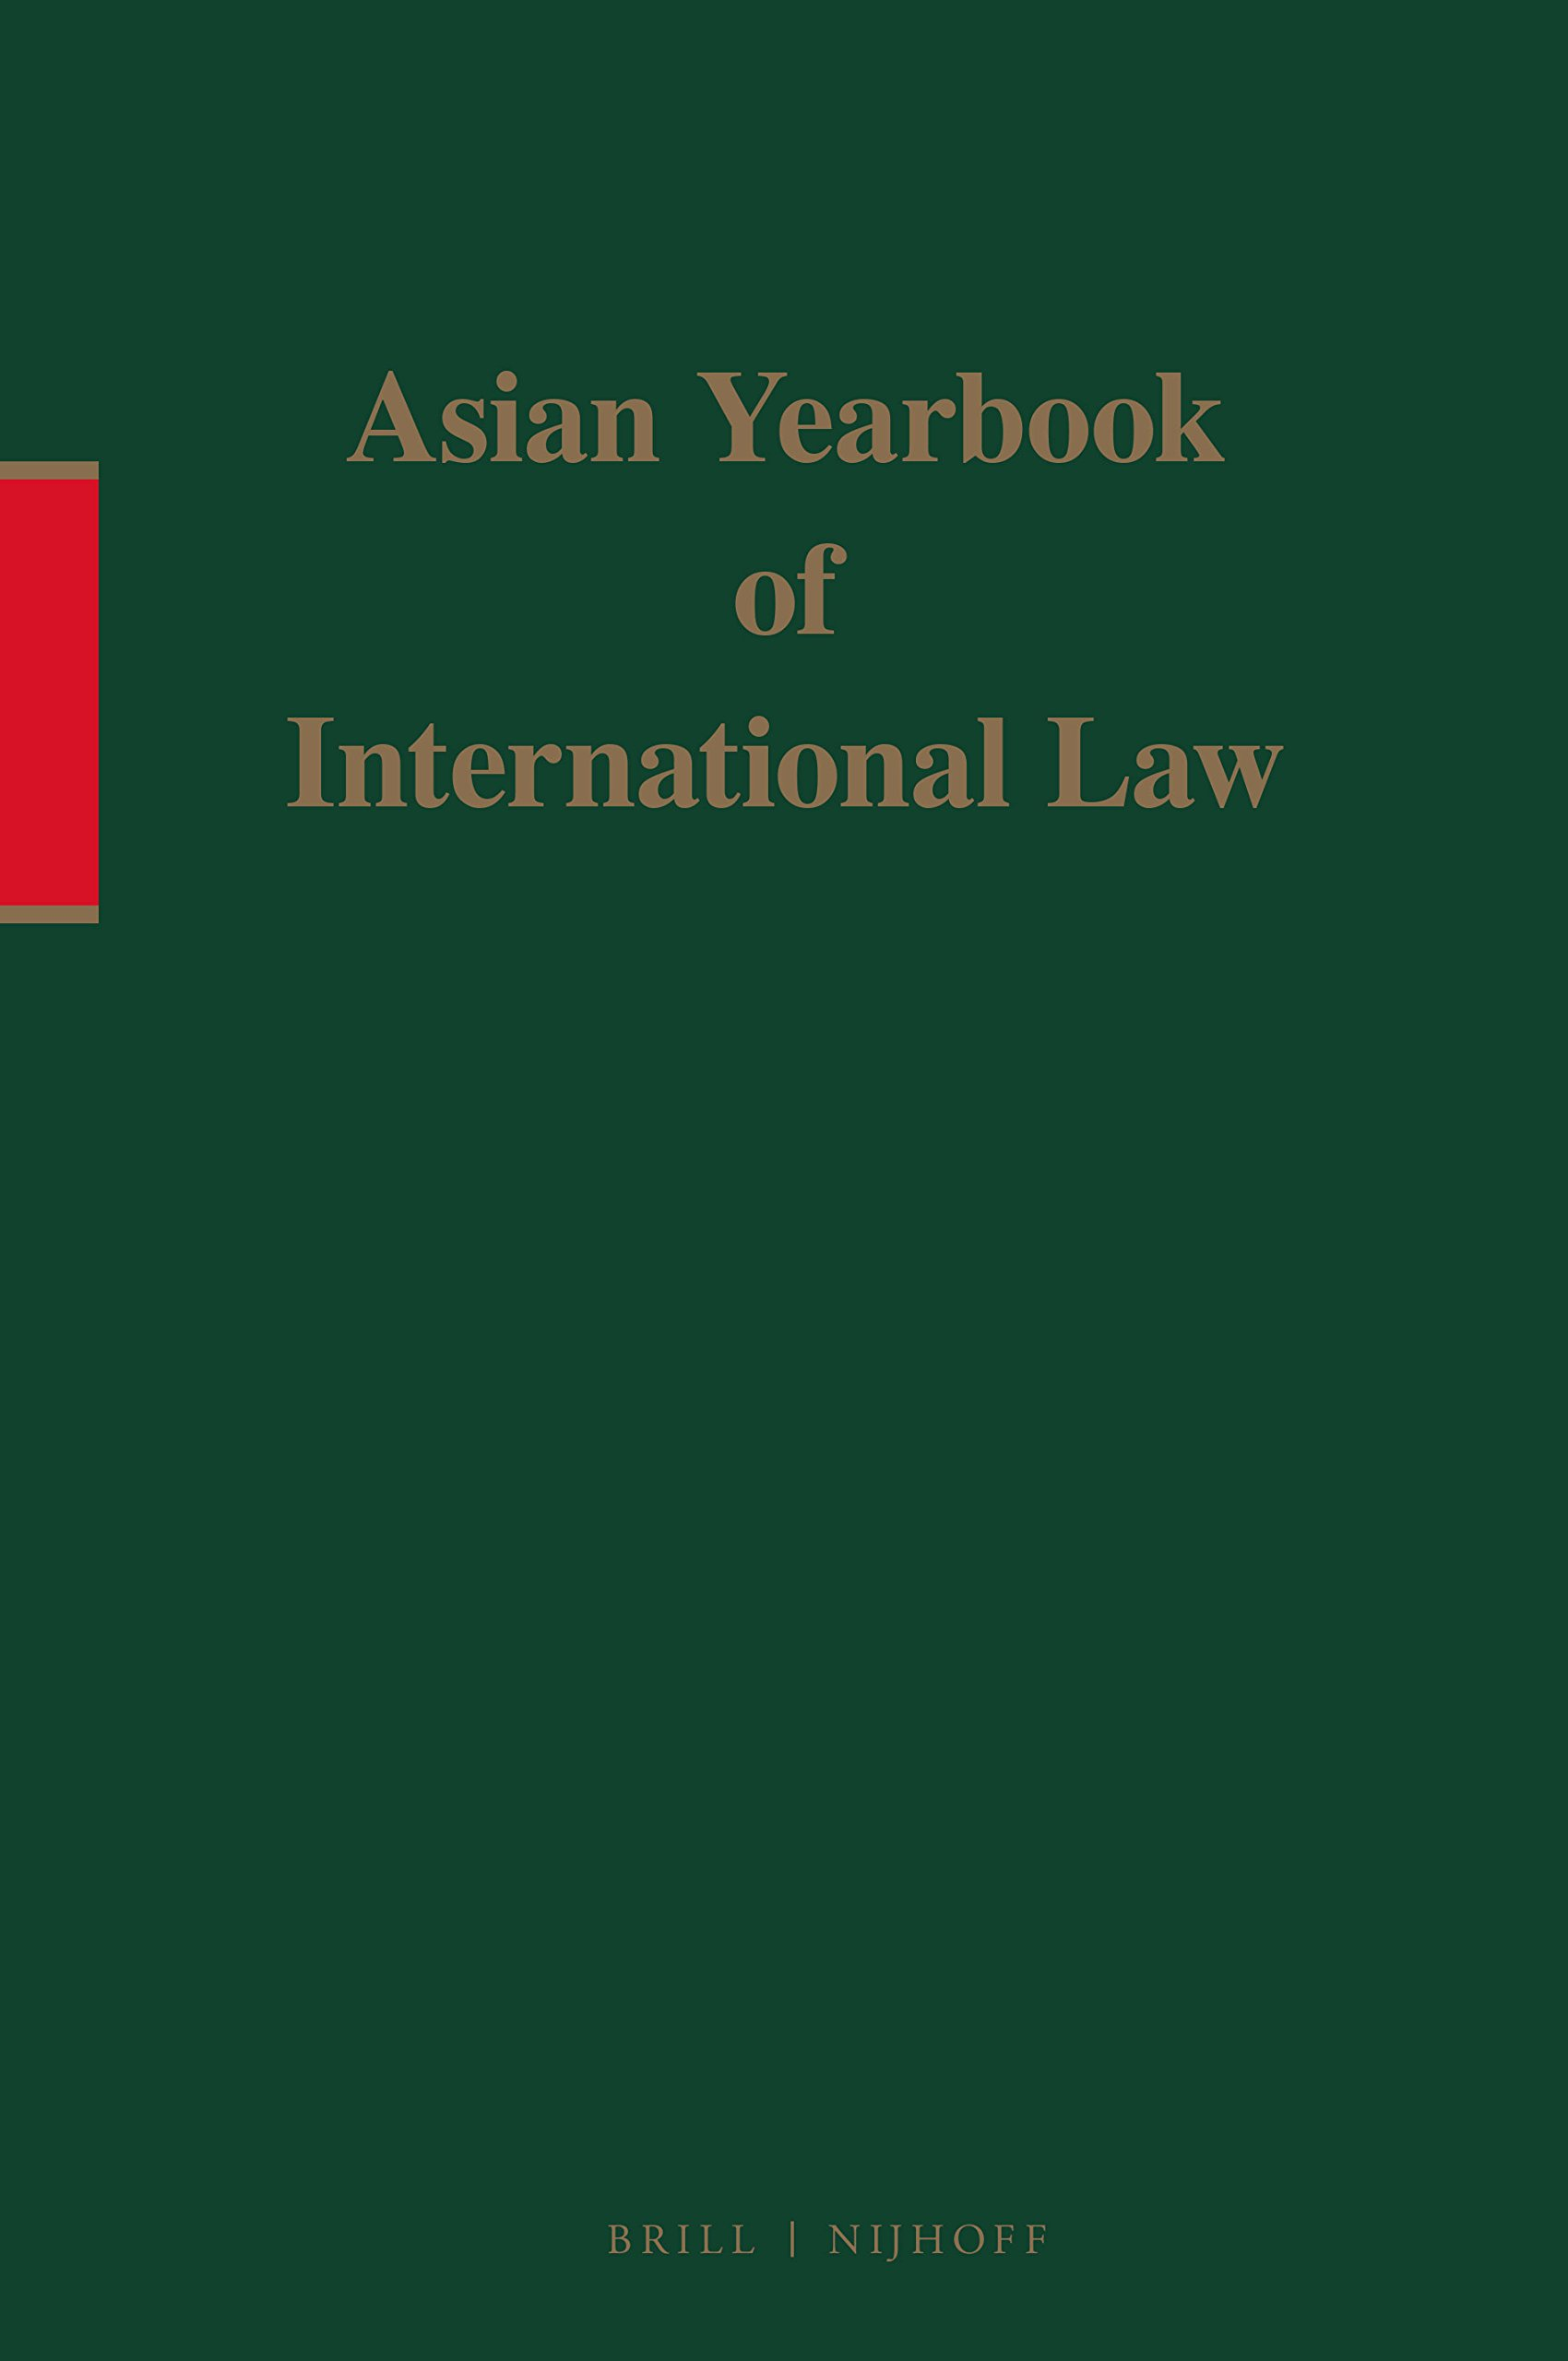 Asian Yearbook of International Law, 1997 pdf